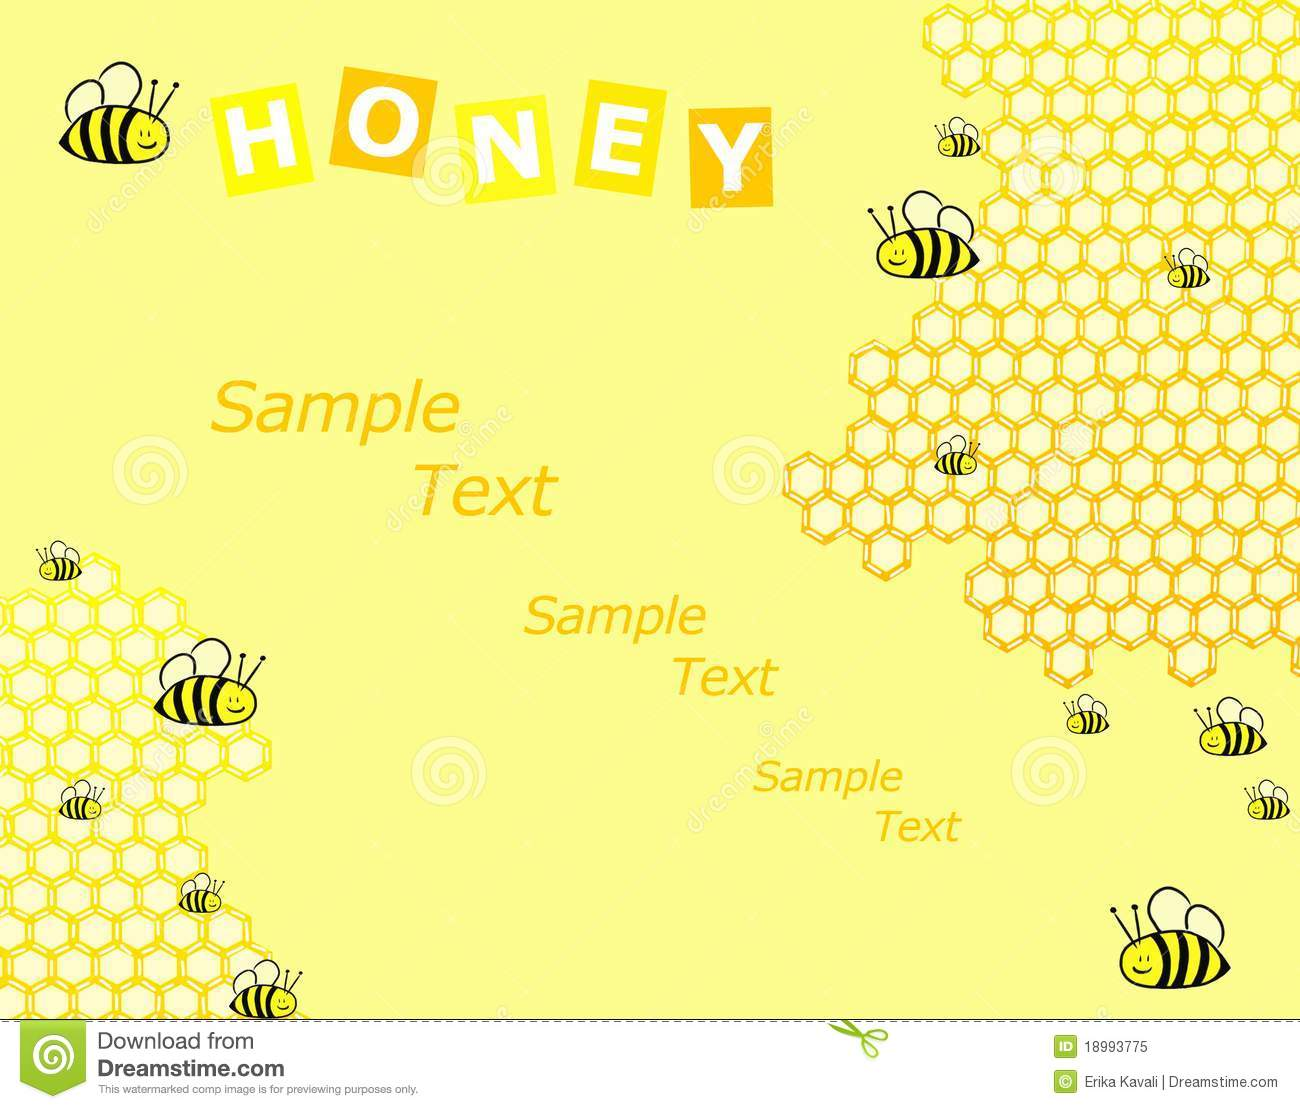 Honey and bees background